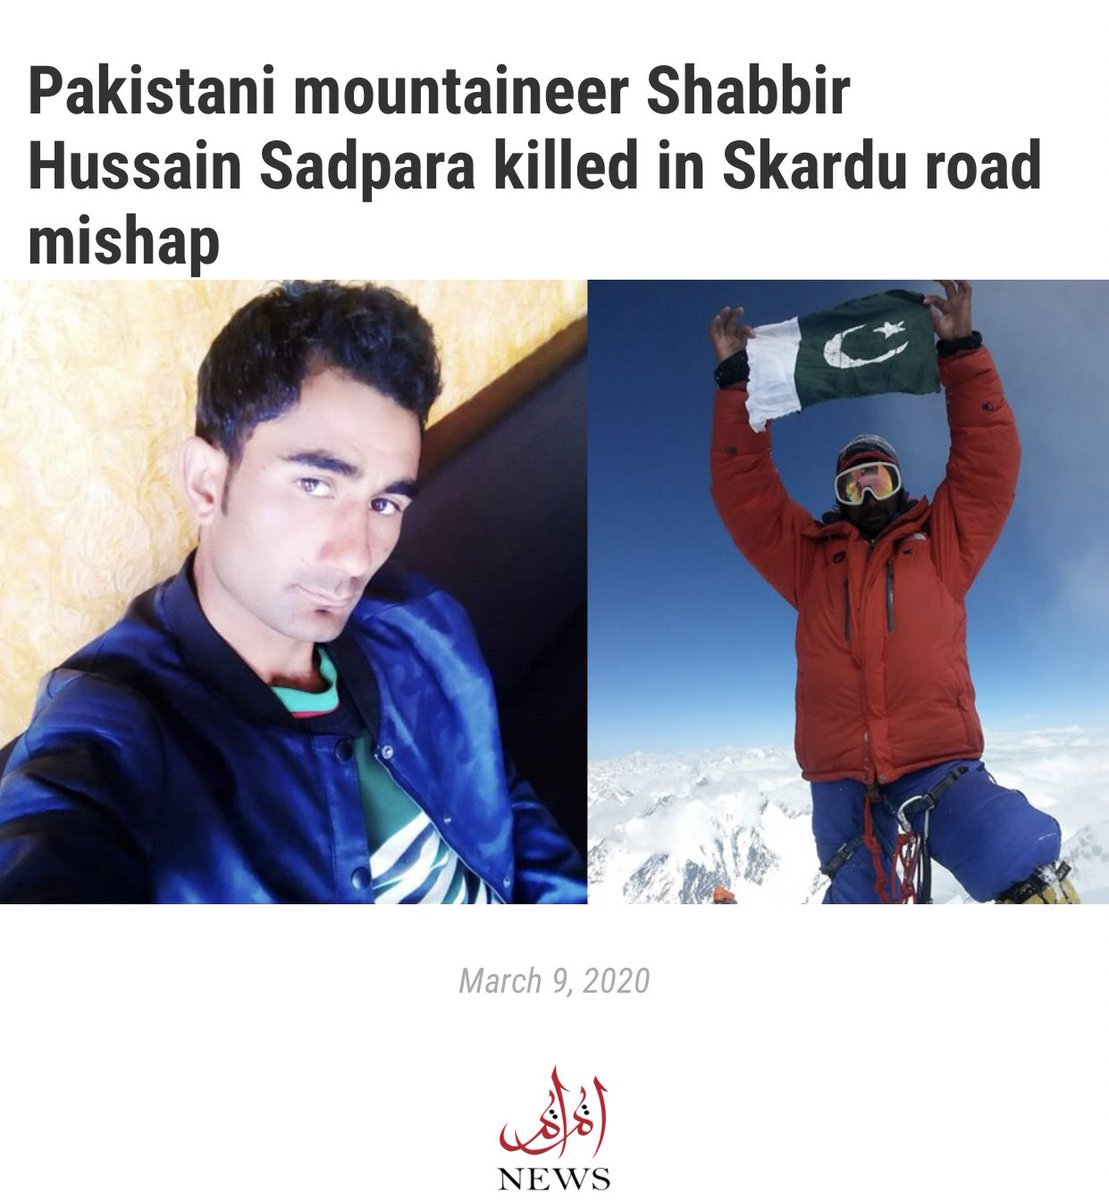 Mountaineer Shabbir Hussain Sadpara dies in Rawalpindi-Skardu bus accident. 26yr old #Sadpara had climbed the world's second-highest peak #K2  •Every single death in this bus accident is tragic. Prayers for families💔 #ShabbirHussainSadpara #GB #ShabbiHussain #Skardu #mountains https://twitter.com/jamilnagri/status/1237104337198944262 …